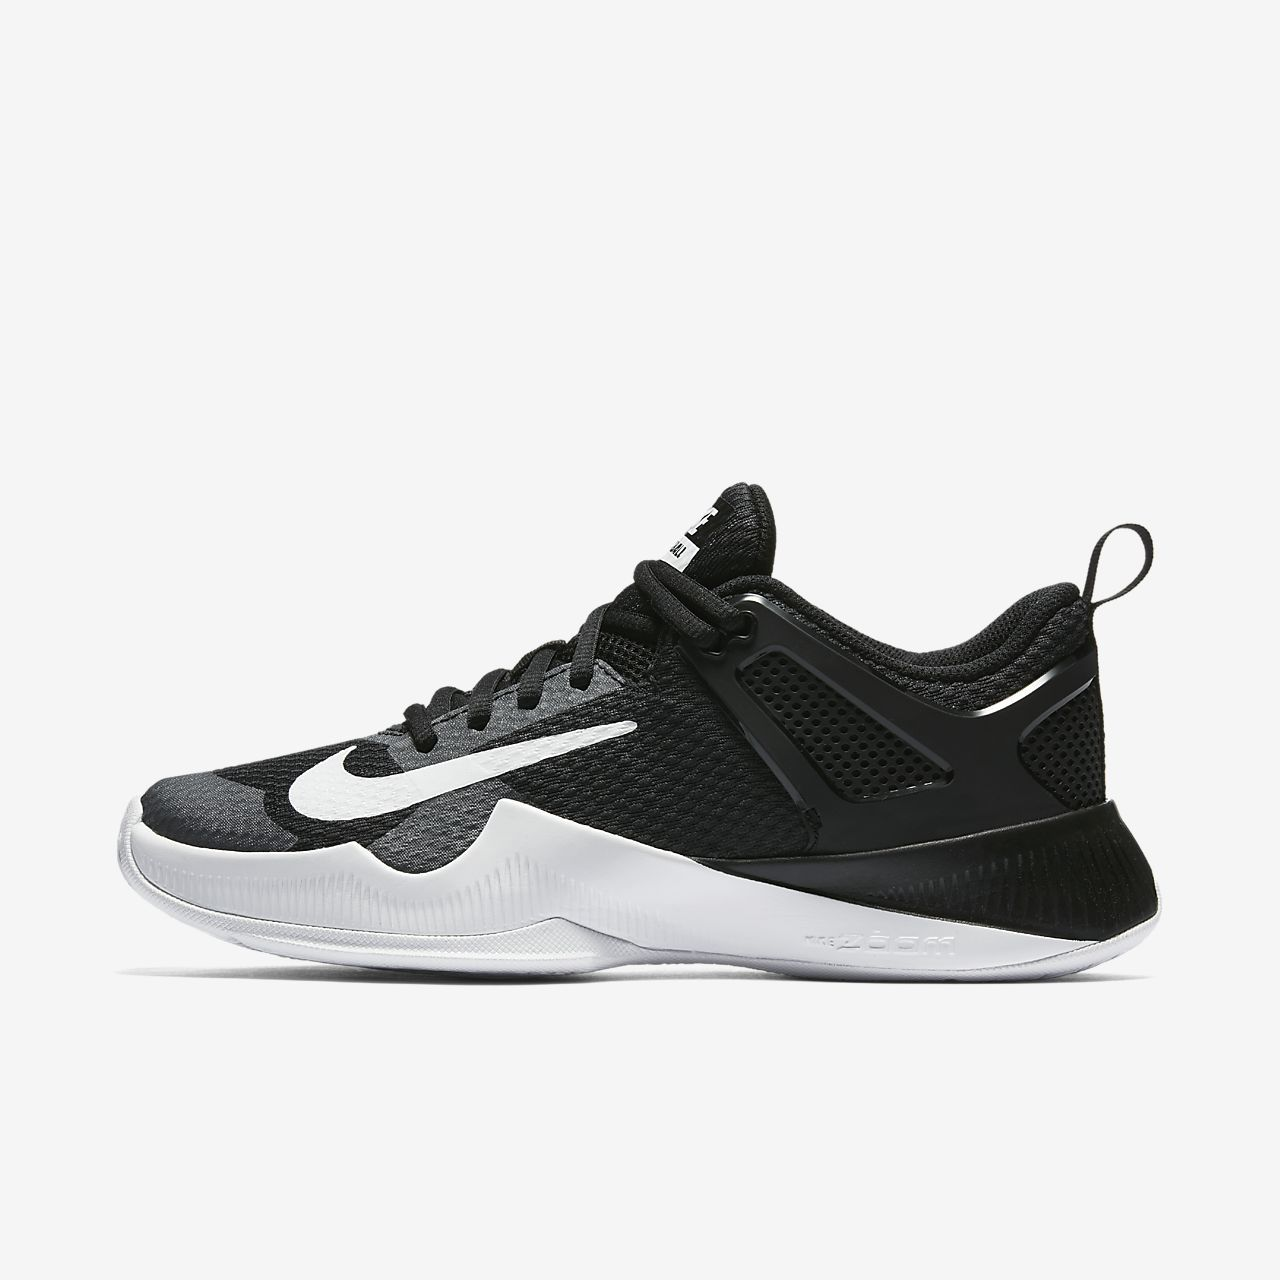 Nike Air Zoom Hyperace Women S Volleyball Shoe Volleyball Shoes Nike Volleyball Shoes Volleyball Sneakers